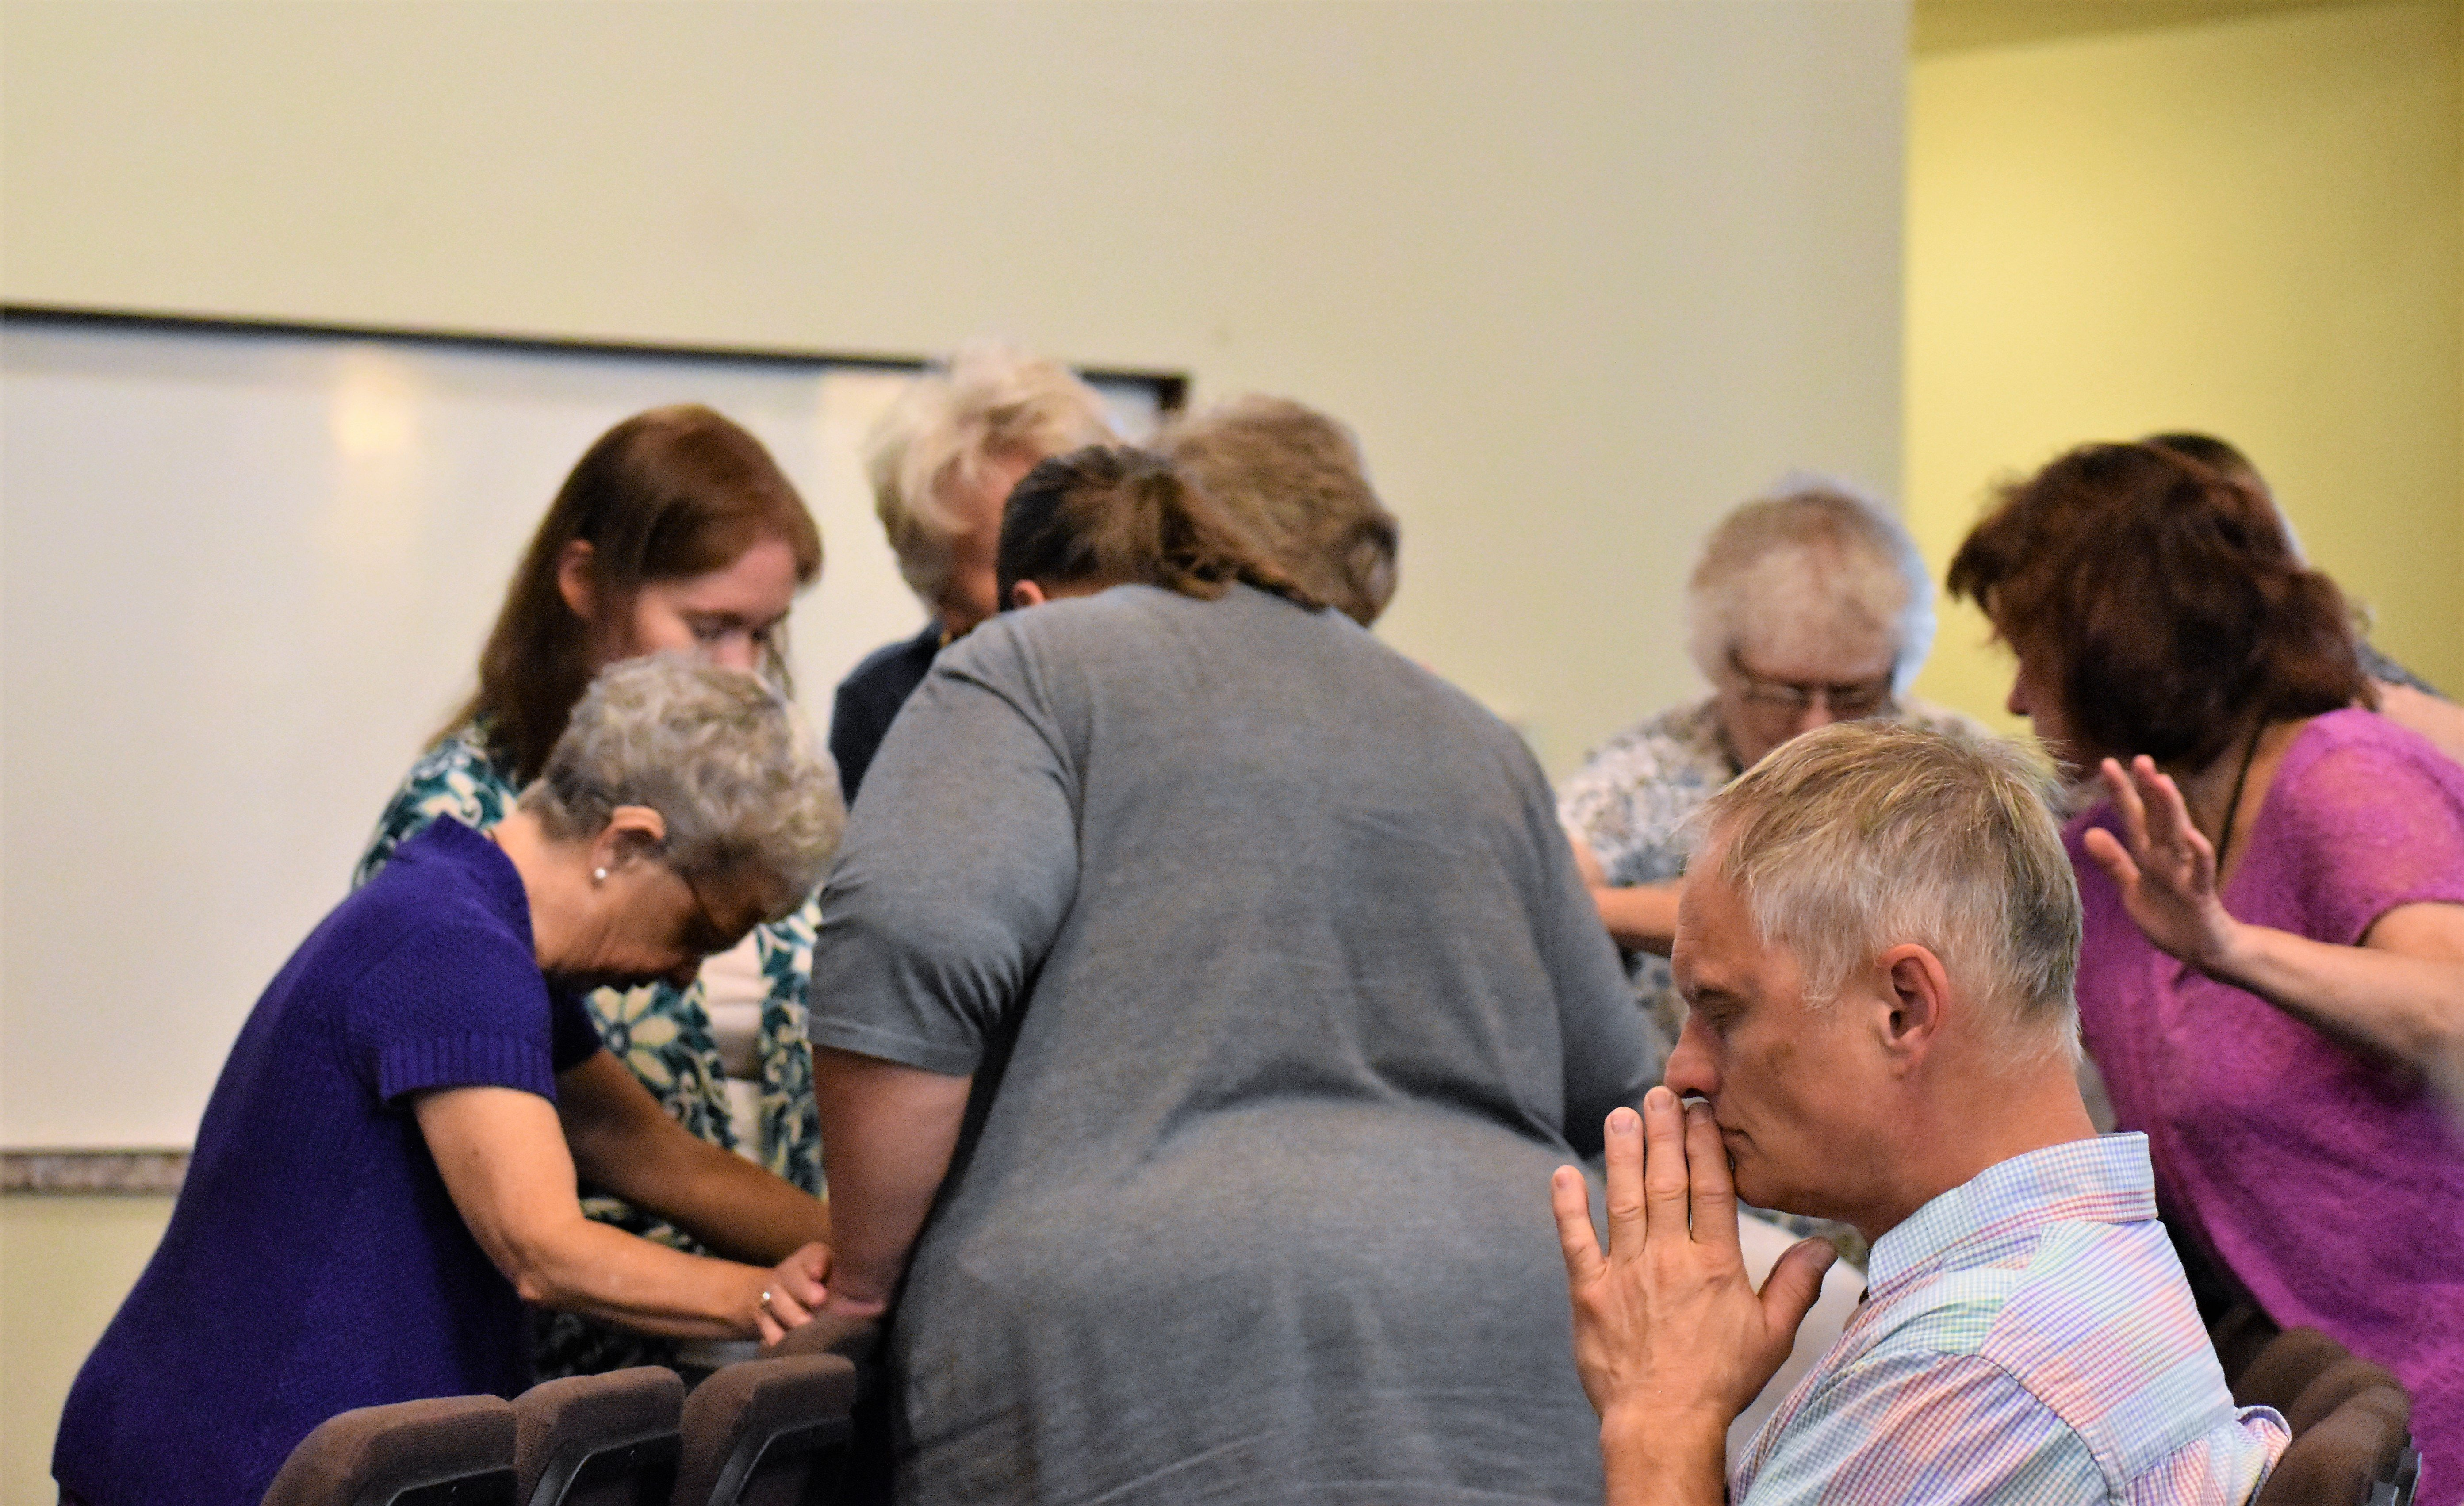 people gathered together to pray for one another